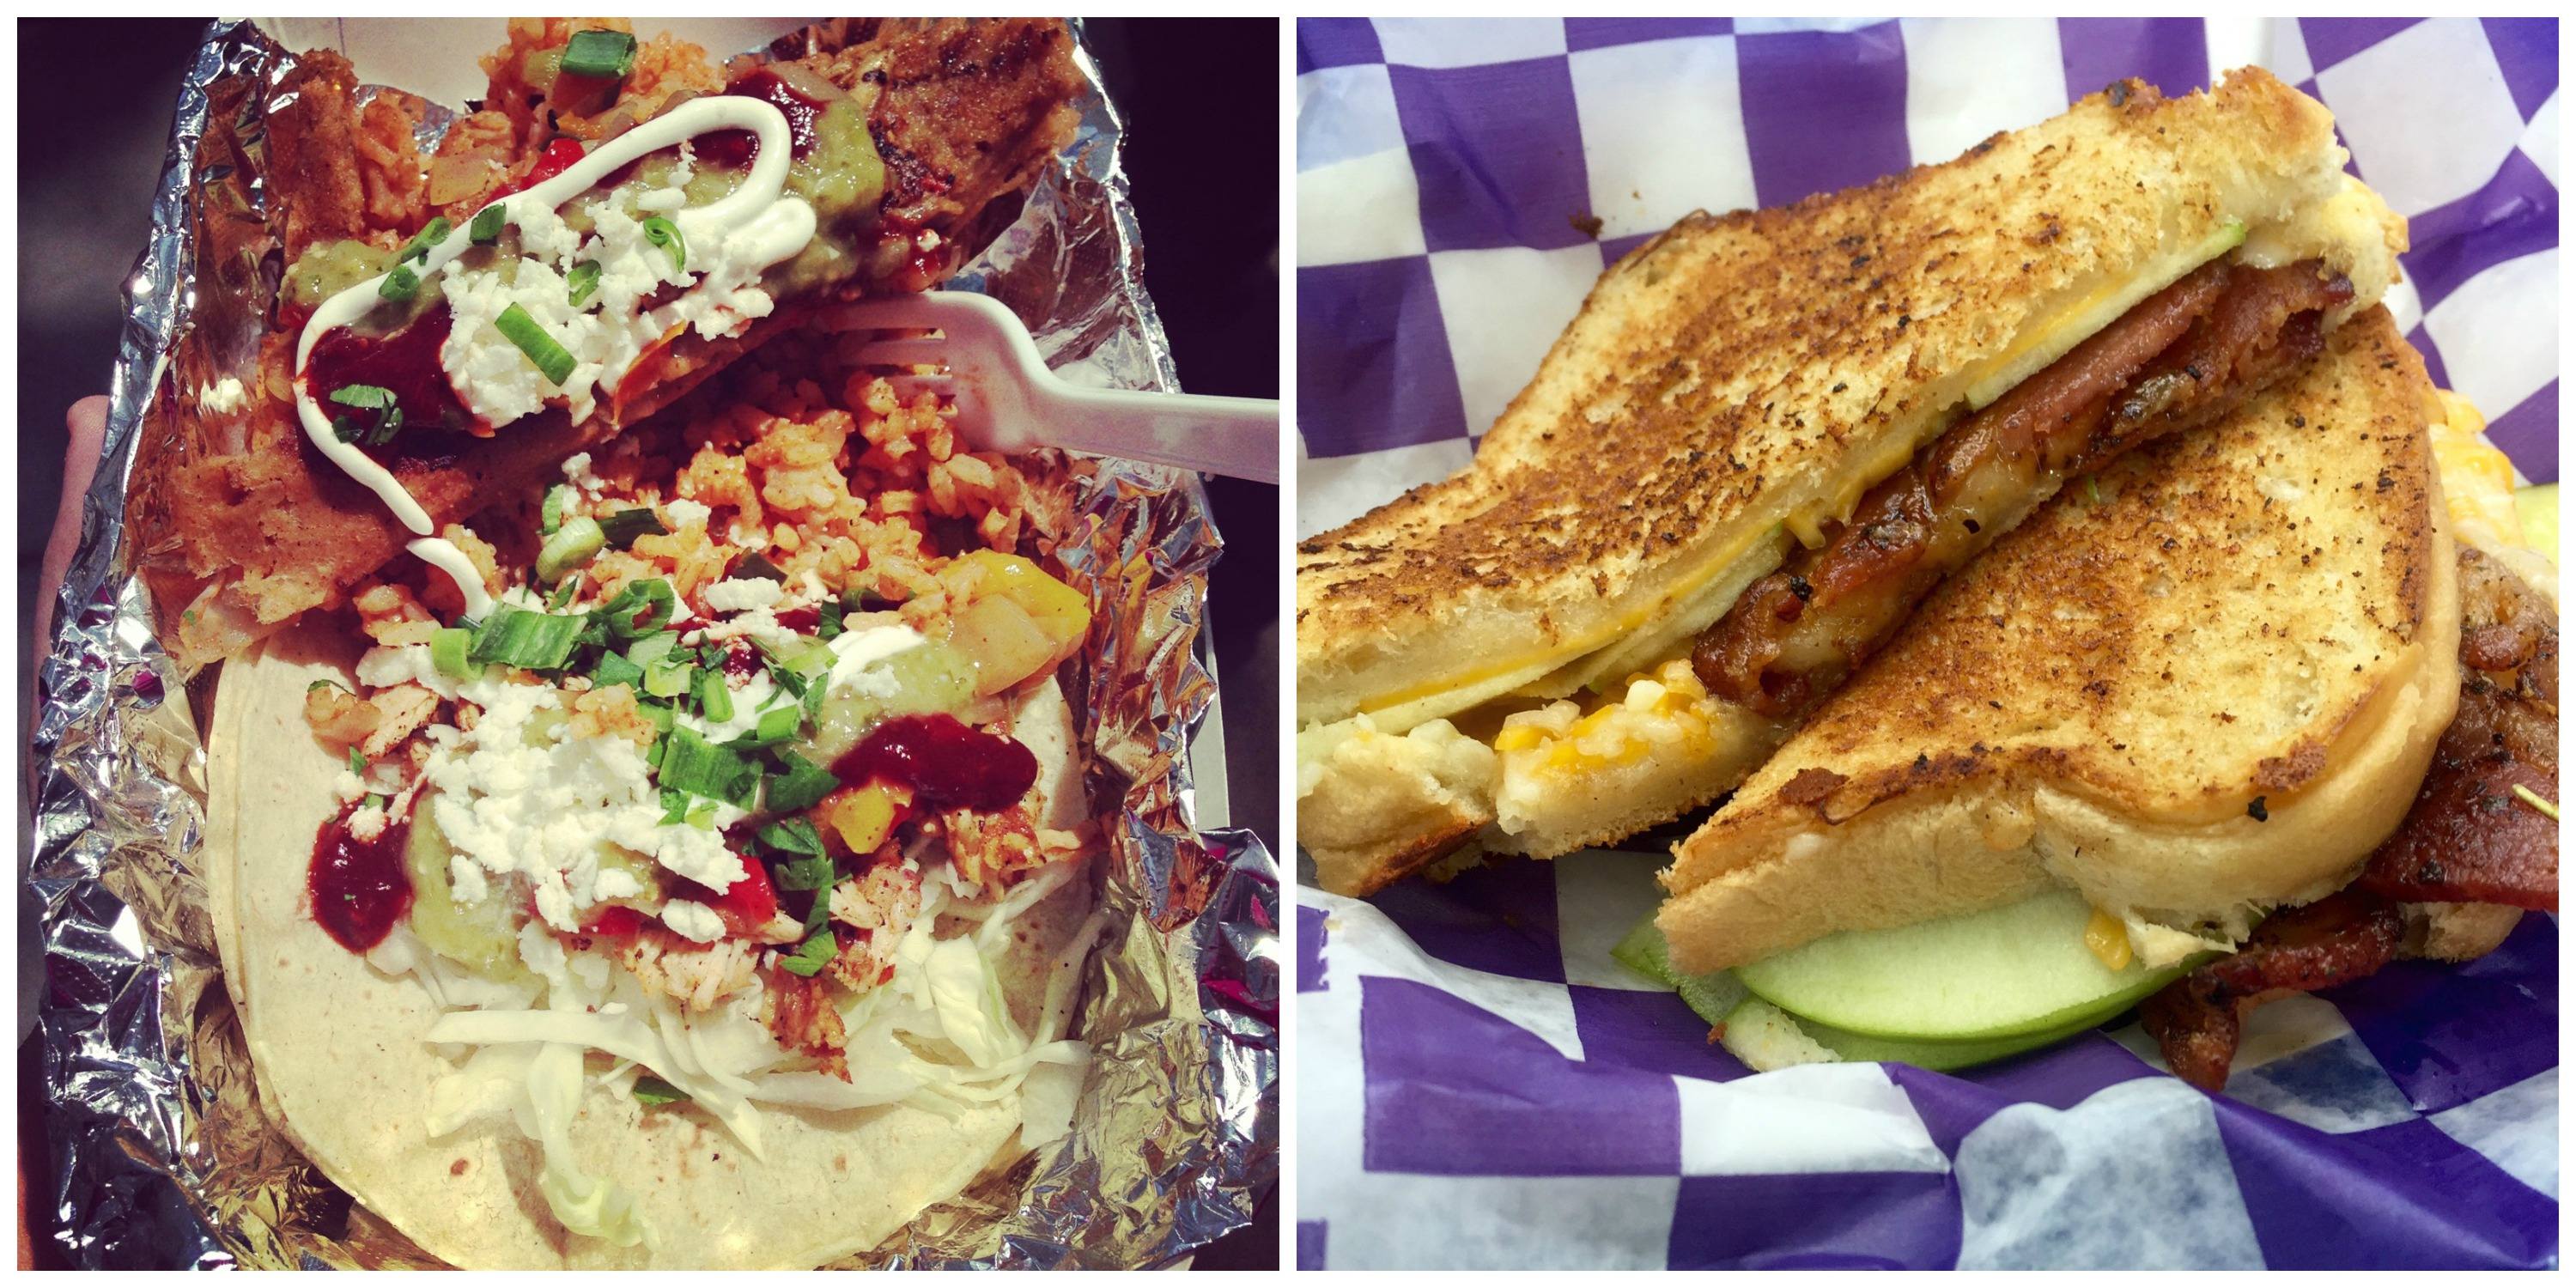 Enjoy tacos from The Getaway Grill, or fancy grilled cheese from Who Cut the Cheese? - just two of the food trucks at Foodstock!